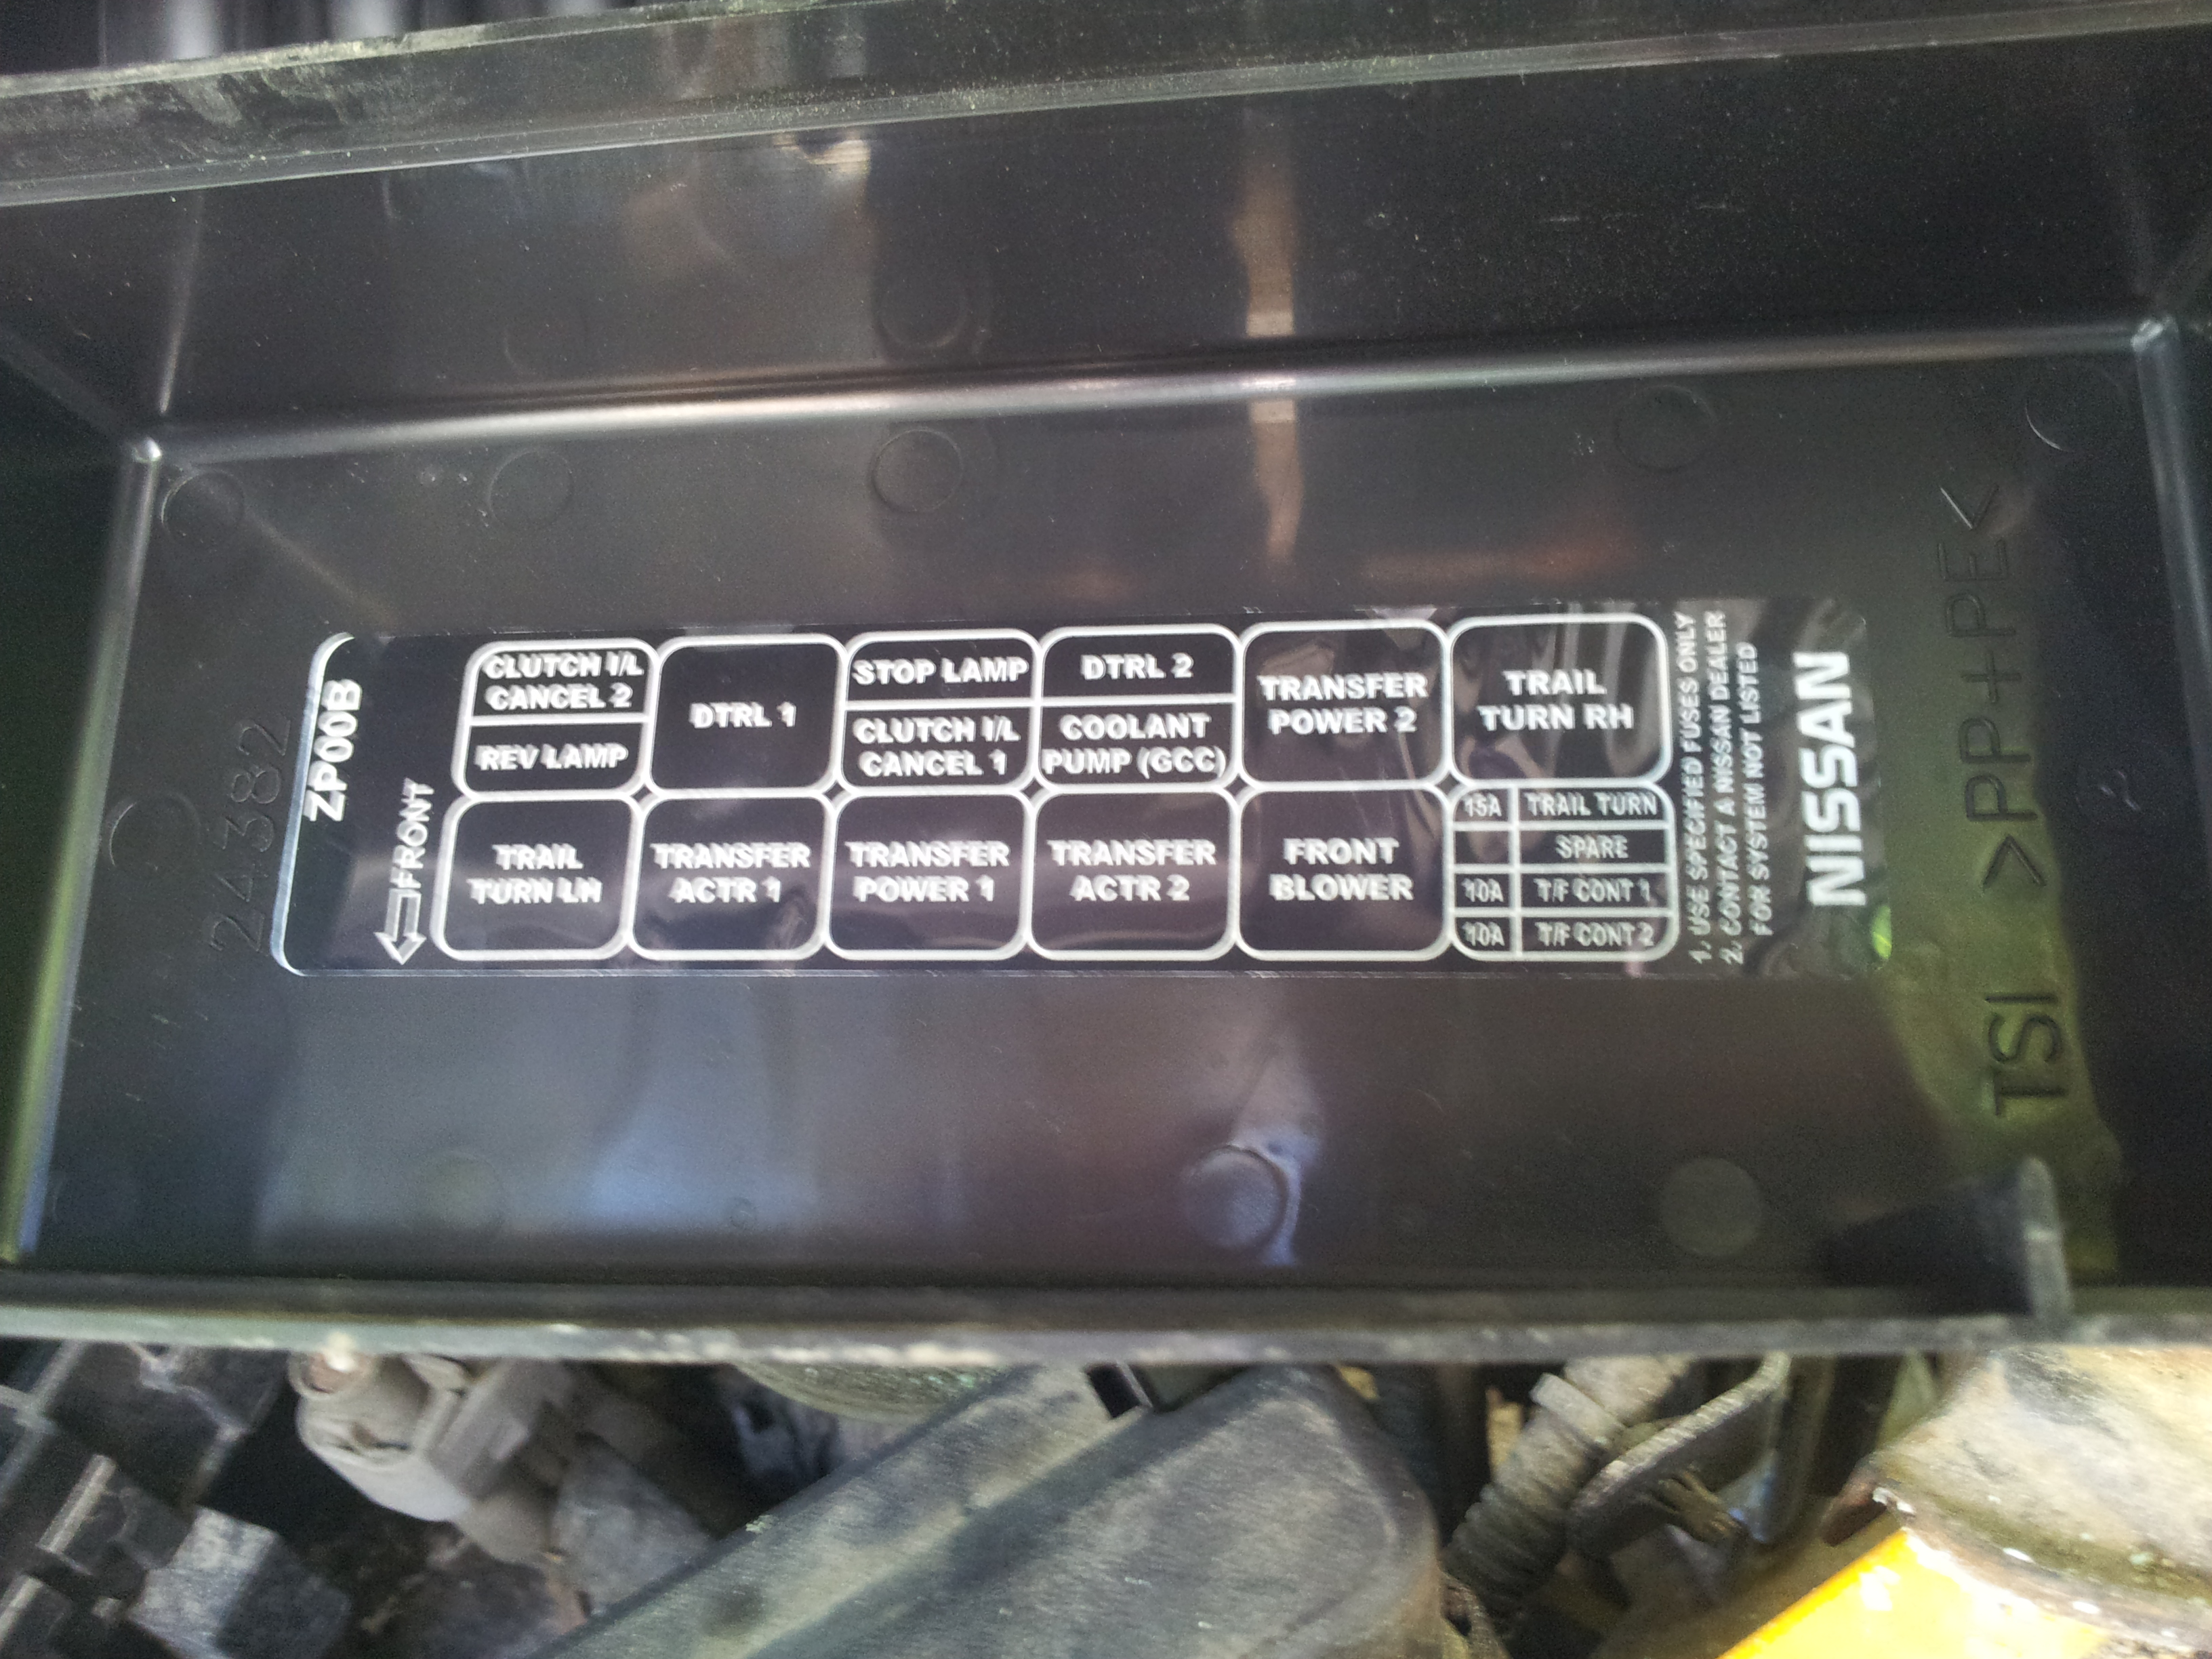 2000 maxima fuse box 2000 maxima headlight wiring diagram 2012 nissan  maxima fuse box location nissan maxima fuse box diagram